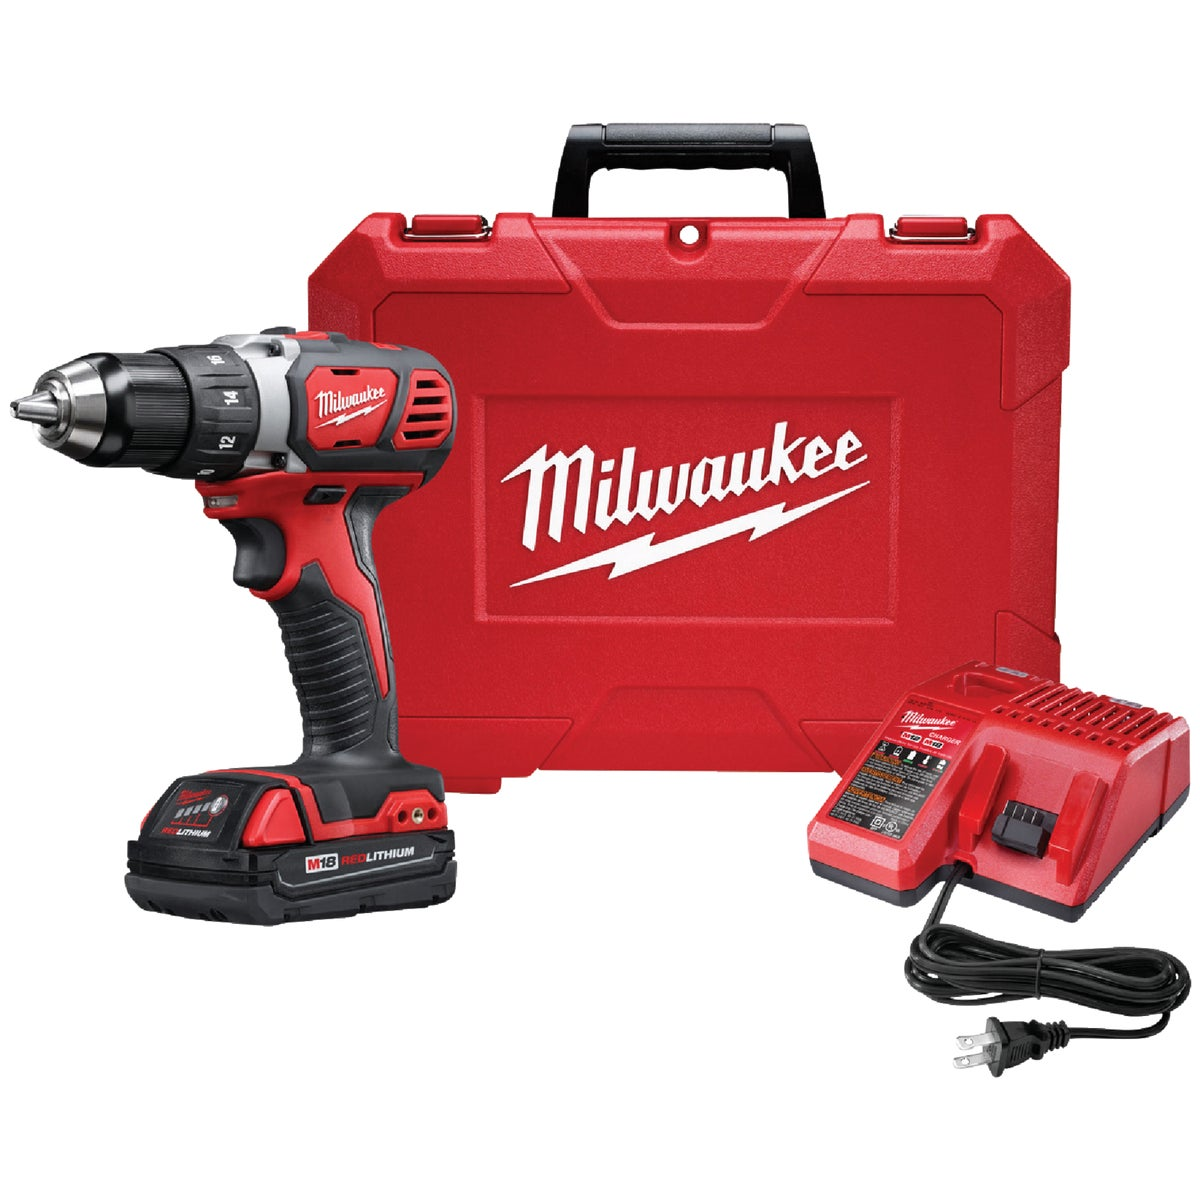 "18V 1/2"" DRIVR/DRILL KIT - 2606-22CT by Milwaukee Elec Tool"